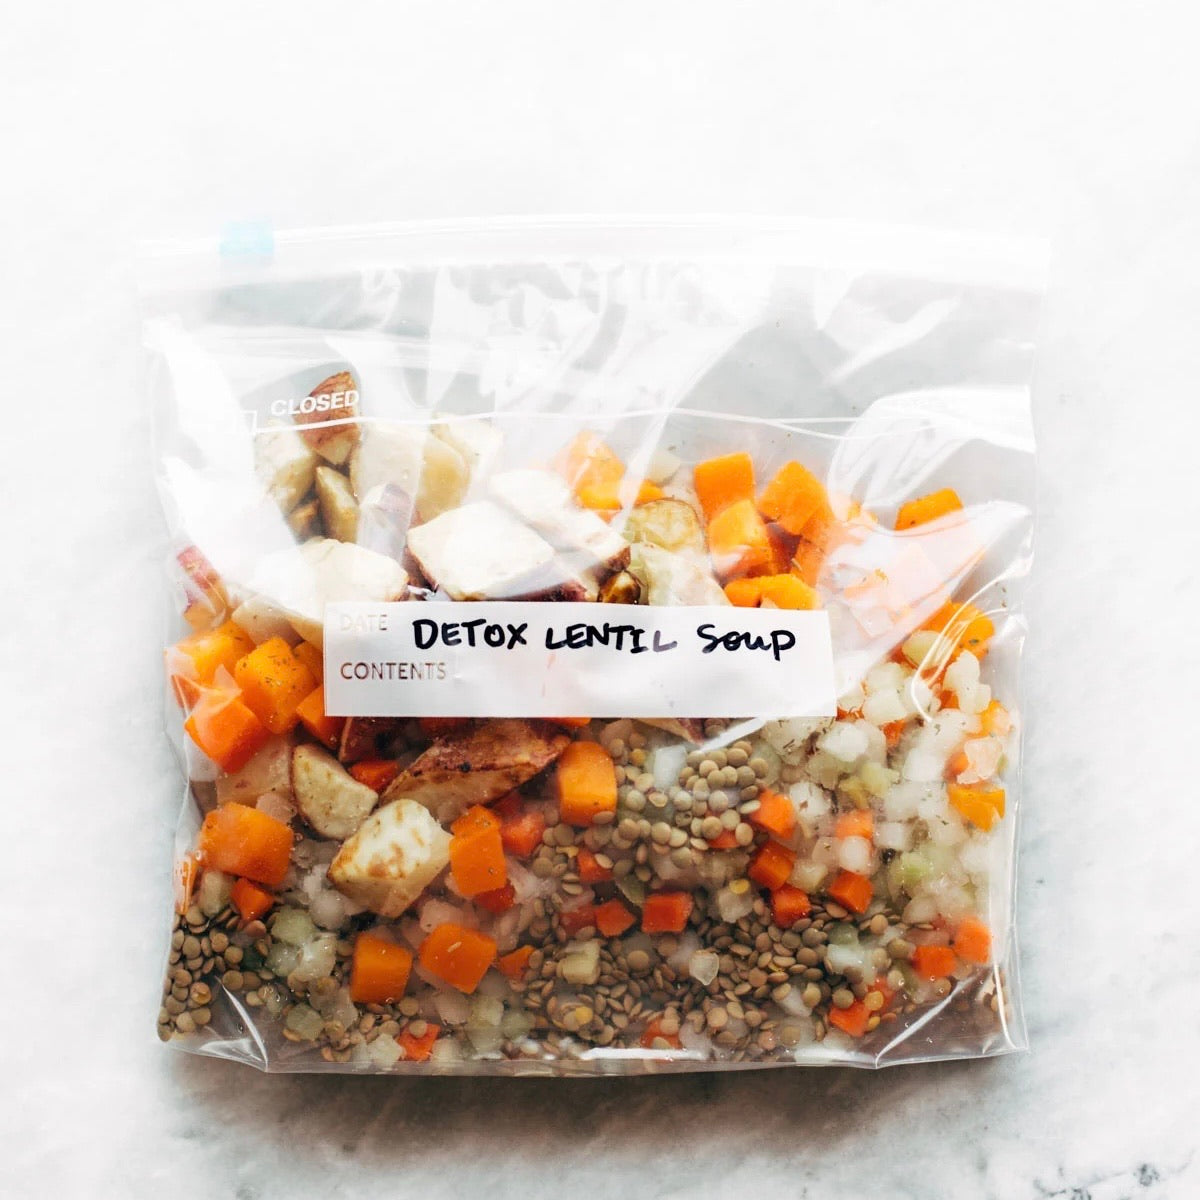 Freezer Meal - Lentil Detox Soup Serves 4-5